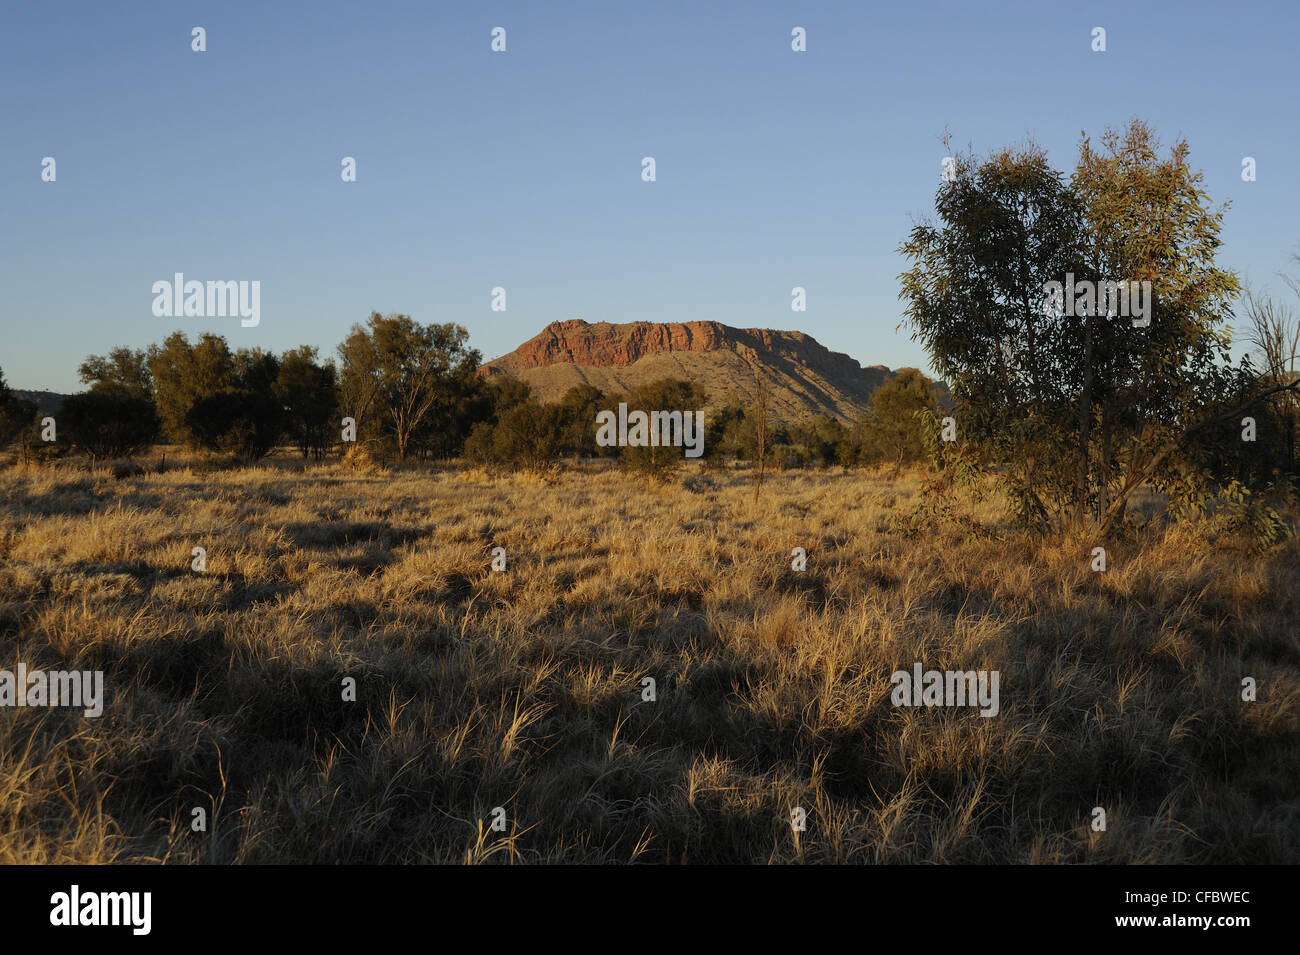 Savanna, bush, Alice Springs, Northern Territory, Australia - Stock Image